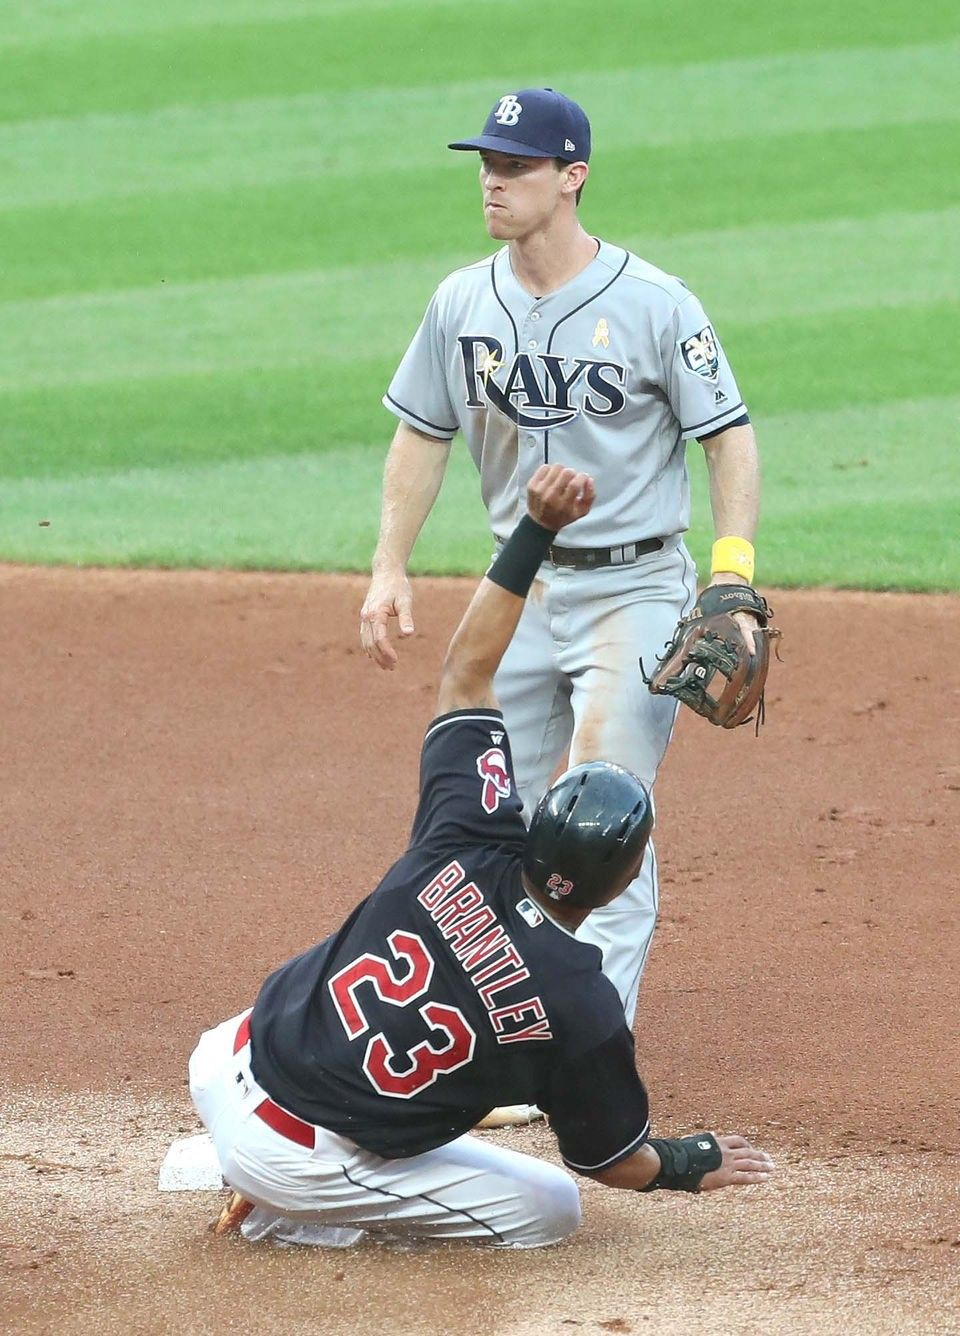 Cleveland Indians Michael Brantley Steals 2nd Base In The 1st As Tampa Bay Rays Joey Wendle Stands Behind At Cleveland Indians Michael Brantley Tampa Bay Rays